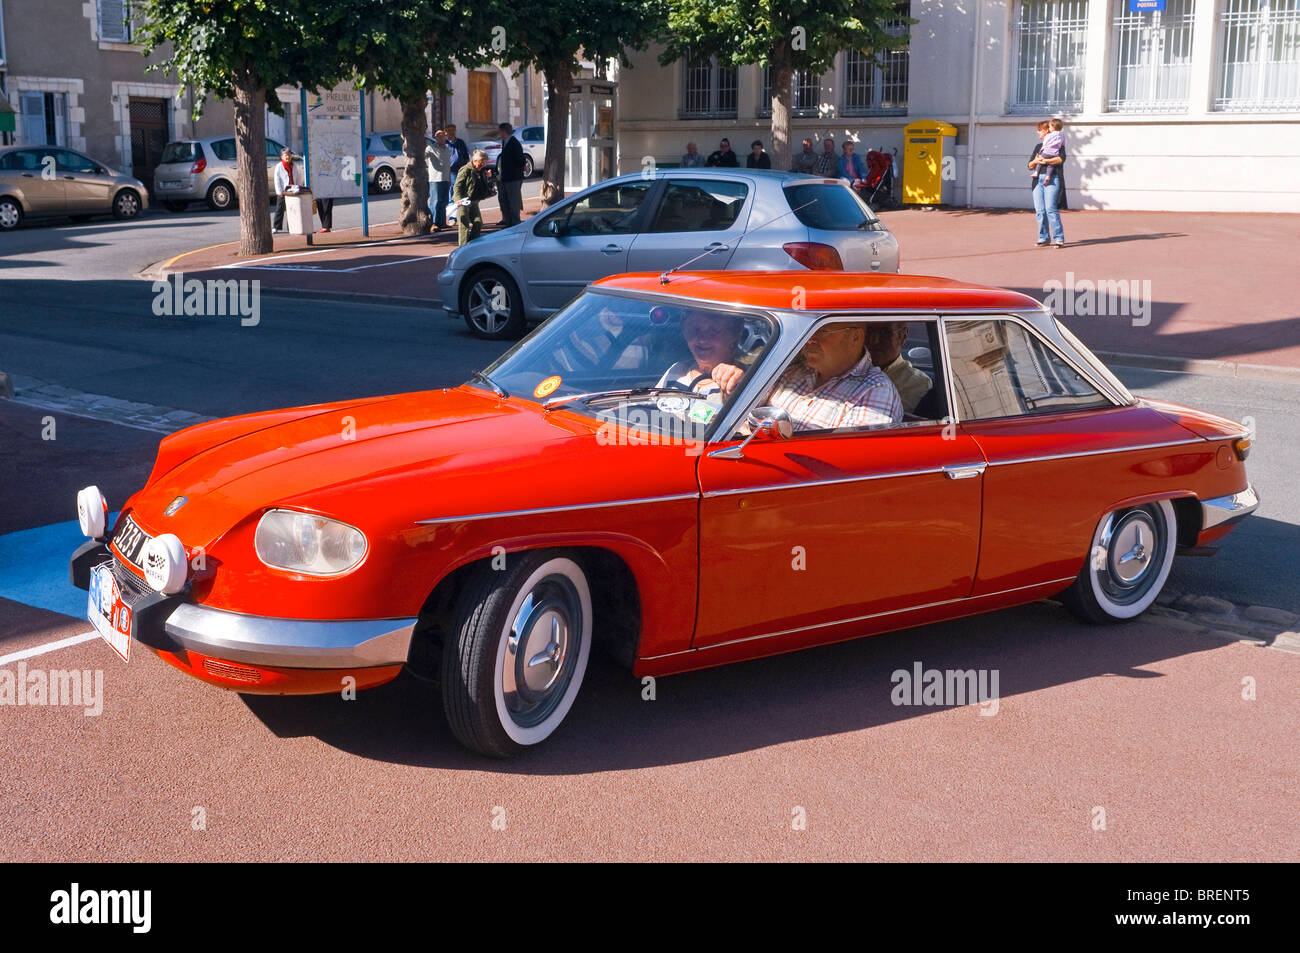 french 1970s matra classic sports car france stock photo 31671925 alamy. Black Bedroom Furniture Sets. Home Design Ideas